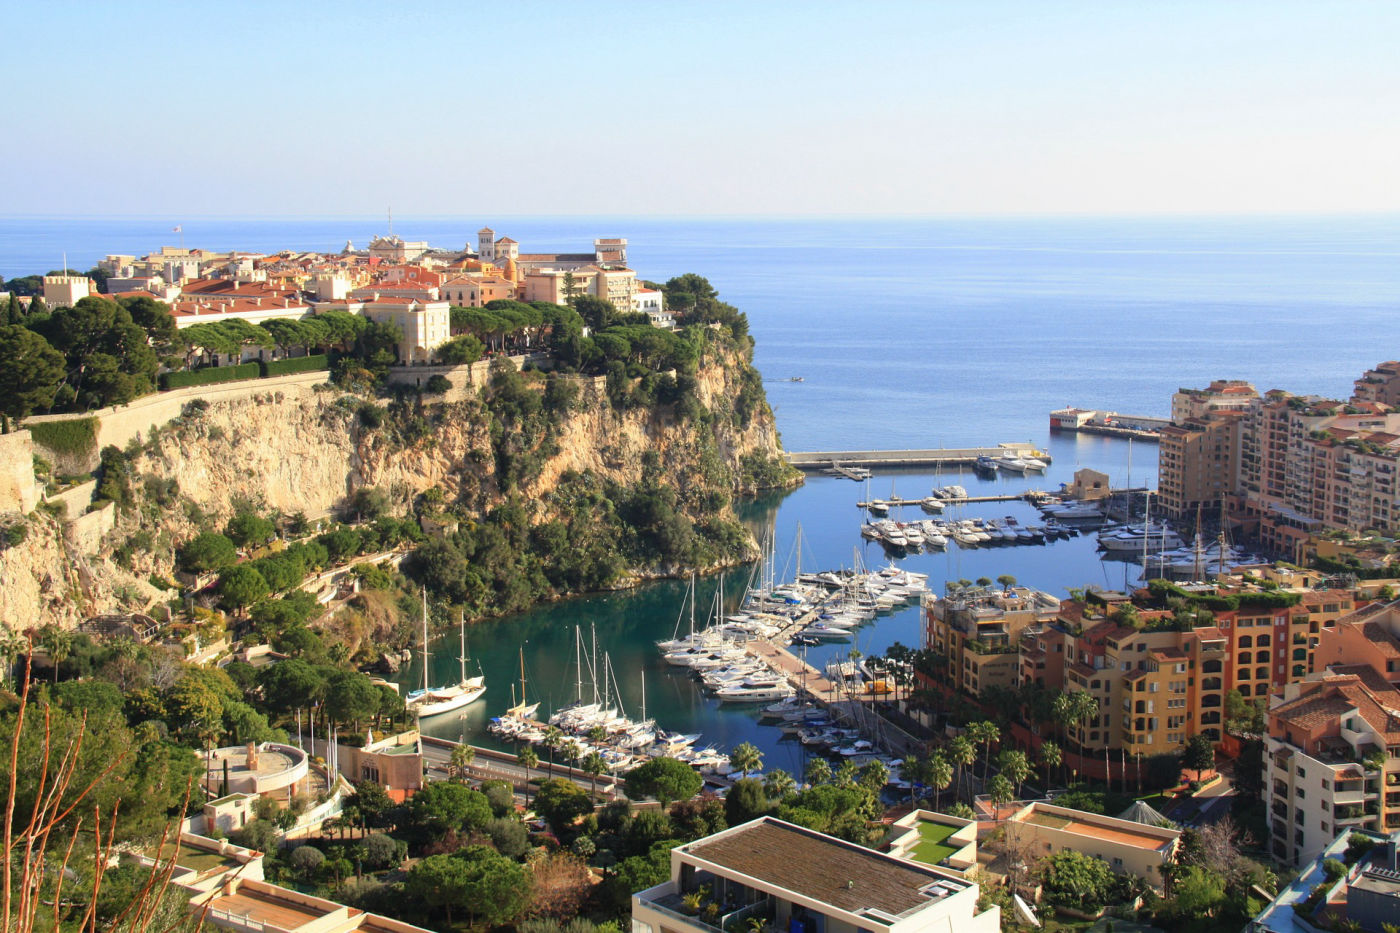 Our Travel Agency - The Principality of Monaco's Premiere Travel Agency, Monte Carlo Travel, founded in 1985, is the travel agency that pioneered Platinium Group's growing success and carried the company's name on the global market.> More